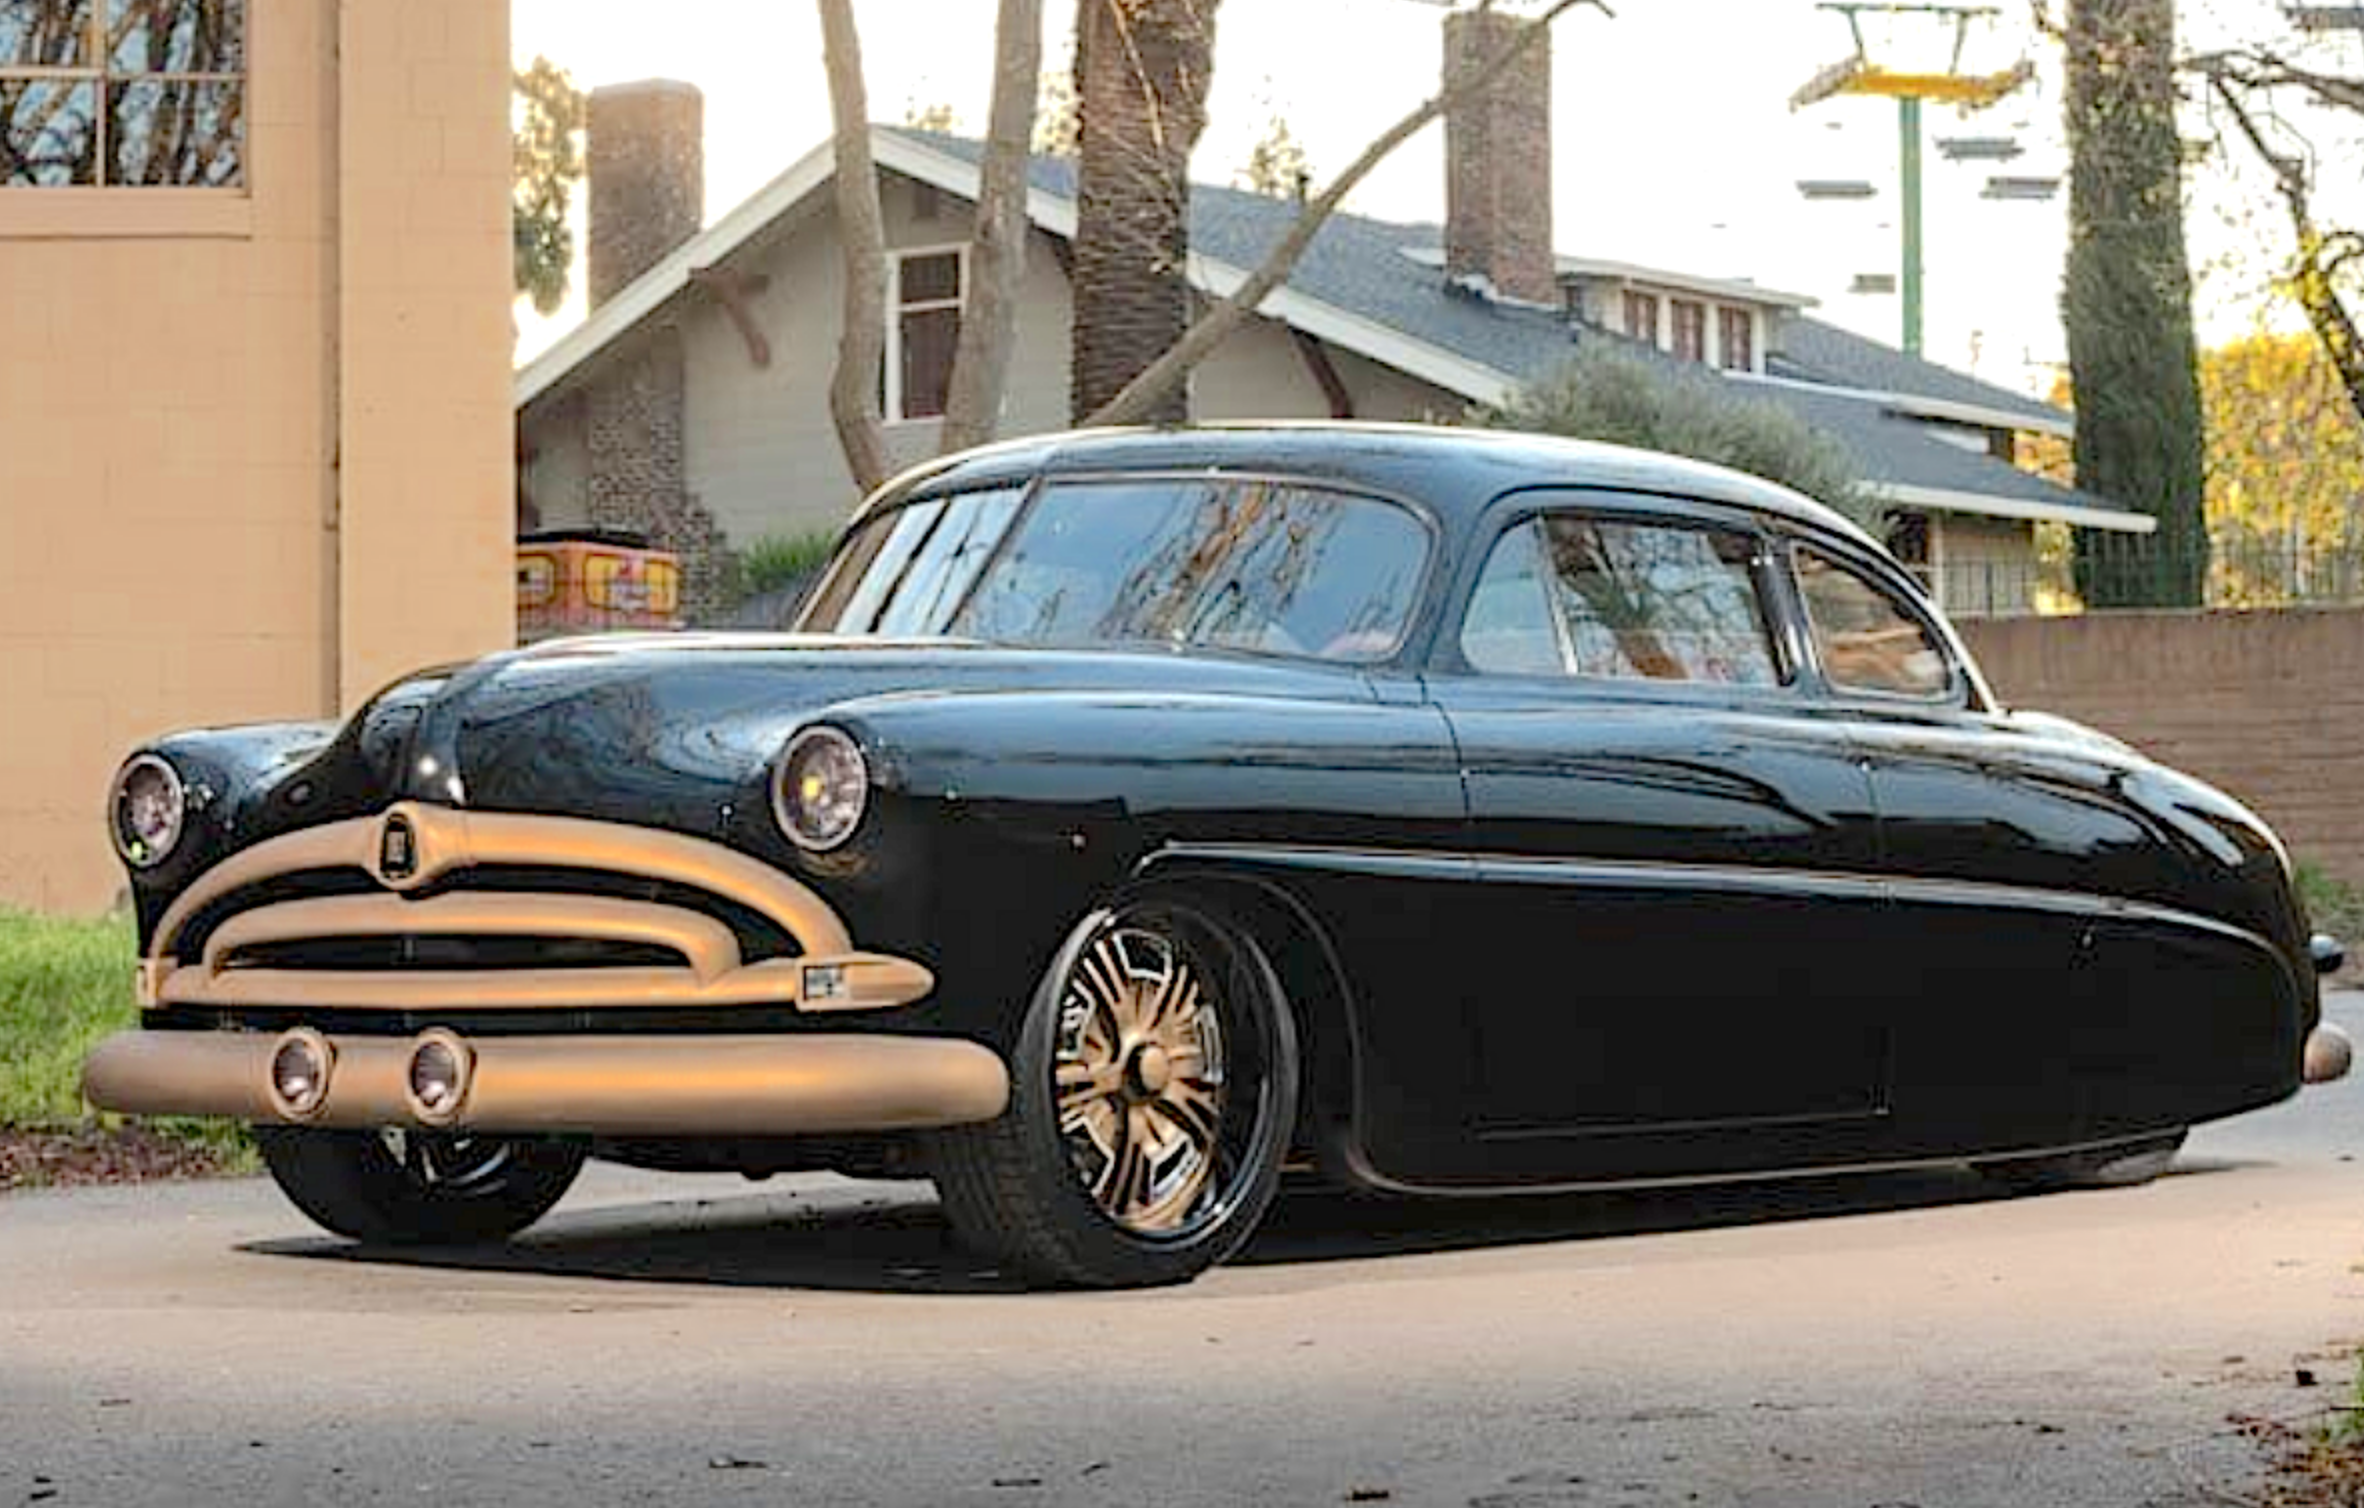 Pin by thelock on crazycars vintage cars custom cars my ride